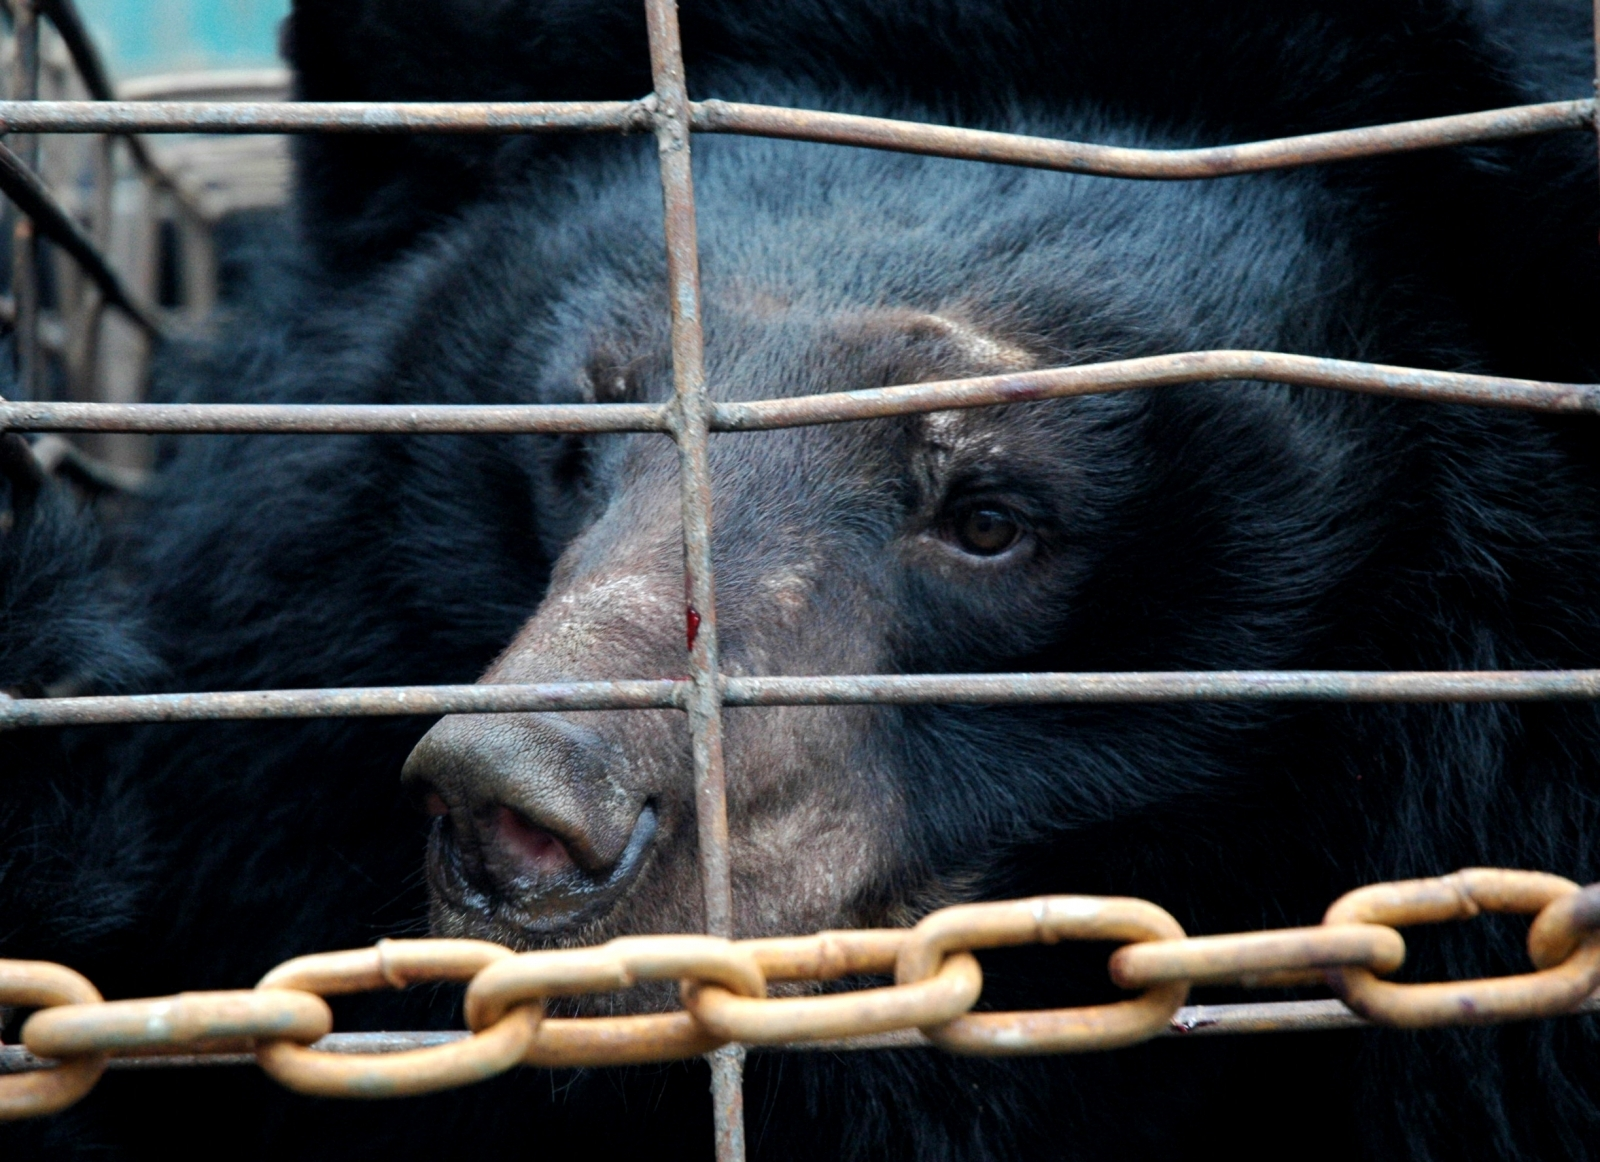 Bear bile: application and reviews 67